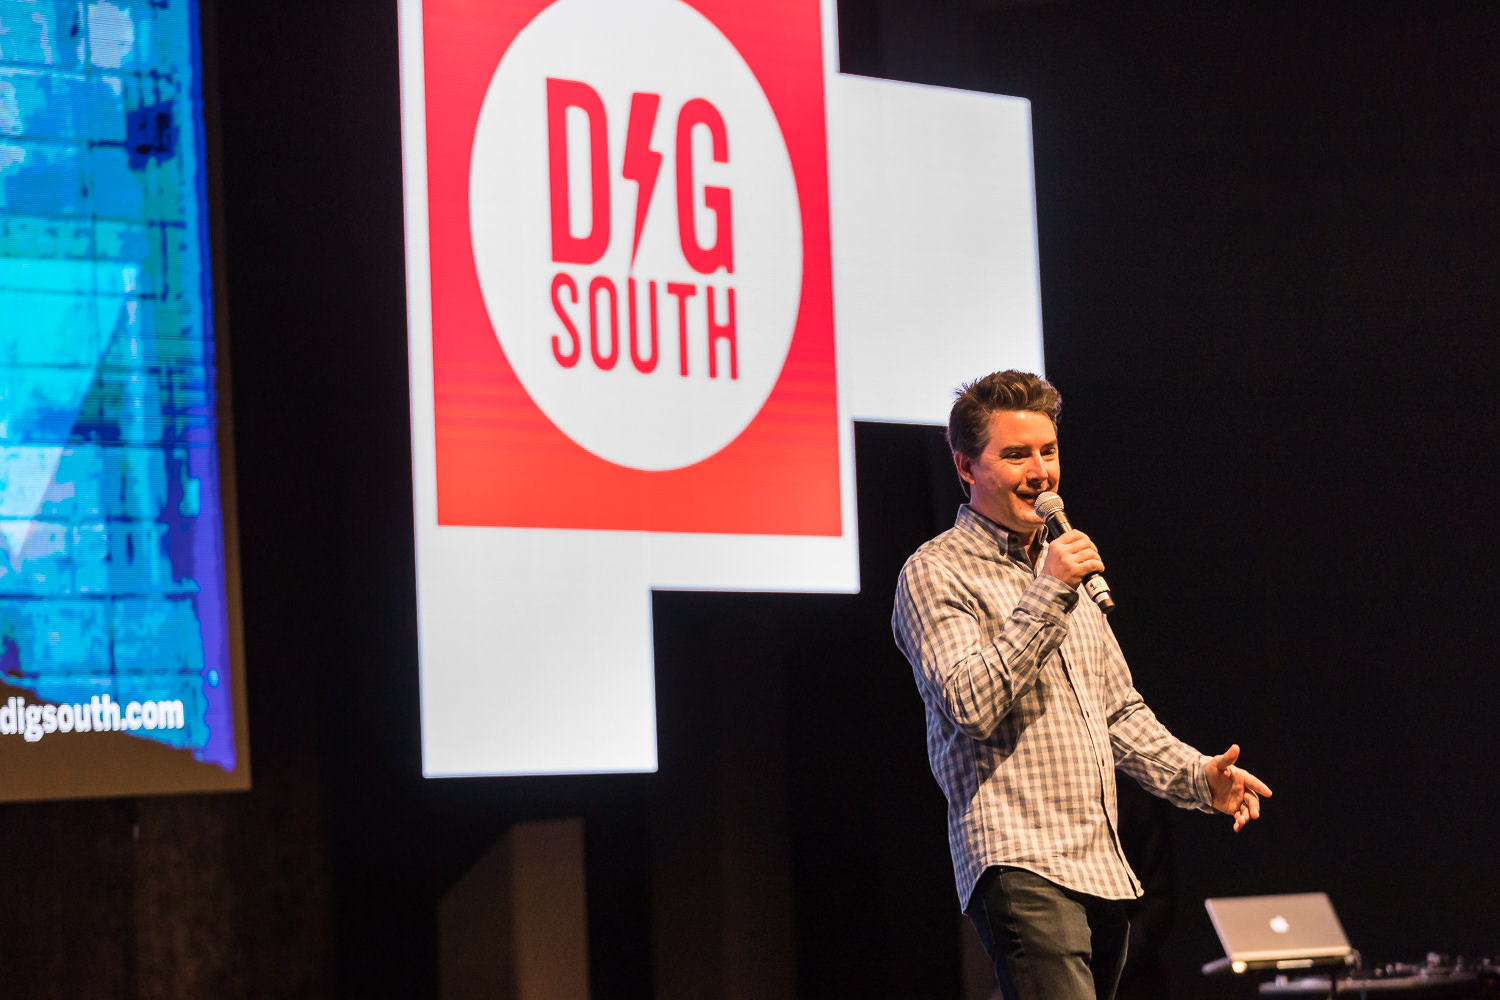 Dig South Founder Stanfield Gray said the tech conference fosters connections between entrepreneurs, founders and investors. (Photo/Adam Chandler)